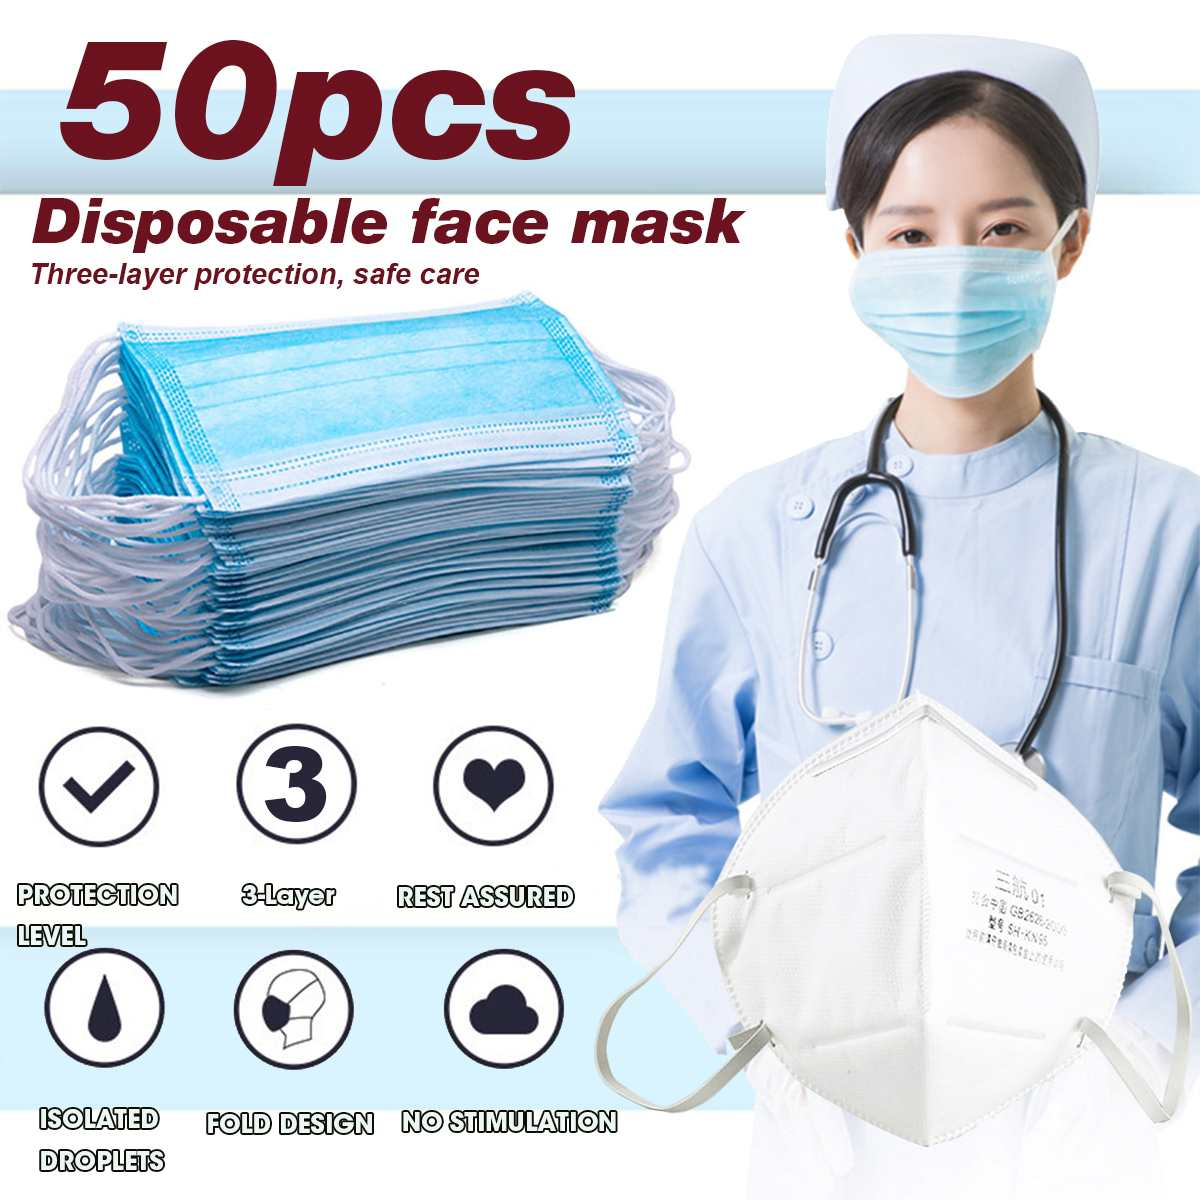 2pcs/50pcs Disposable Mask Mouth Face Mask N95 95% Non-woven Fabric Protective Mask Anti-Dust 3-layer Filtration Against Droplet